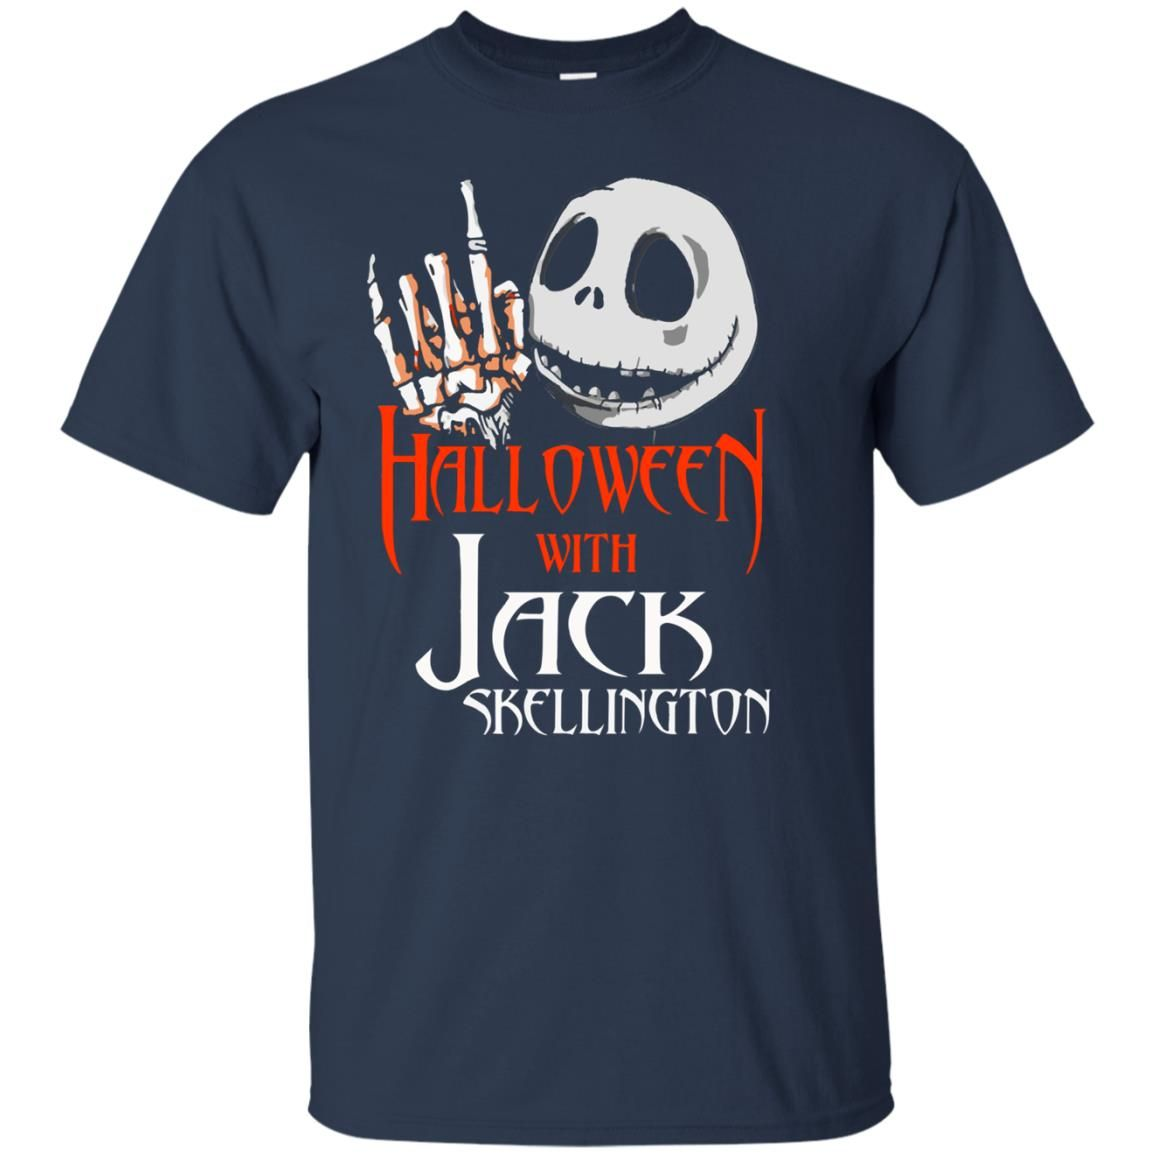 image 1377 - Halloween with Jack Skellington shirt, tank top, sweater